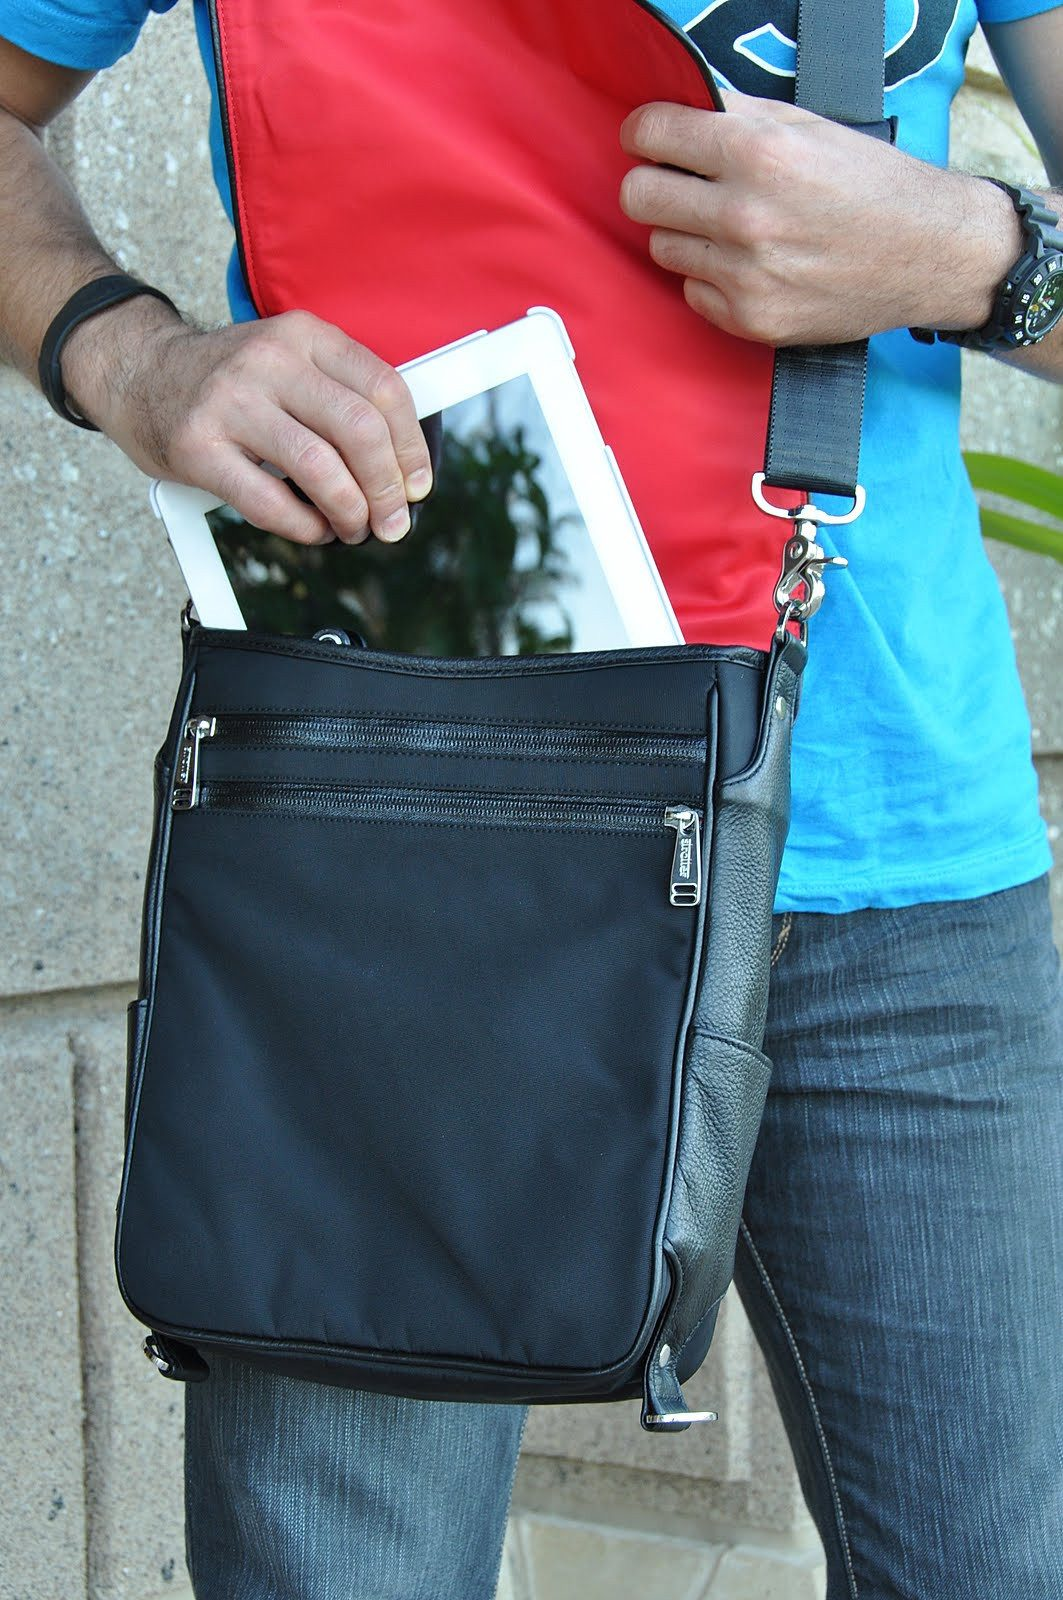 Putting iPad  into Platforma bag.